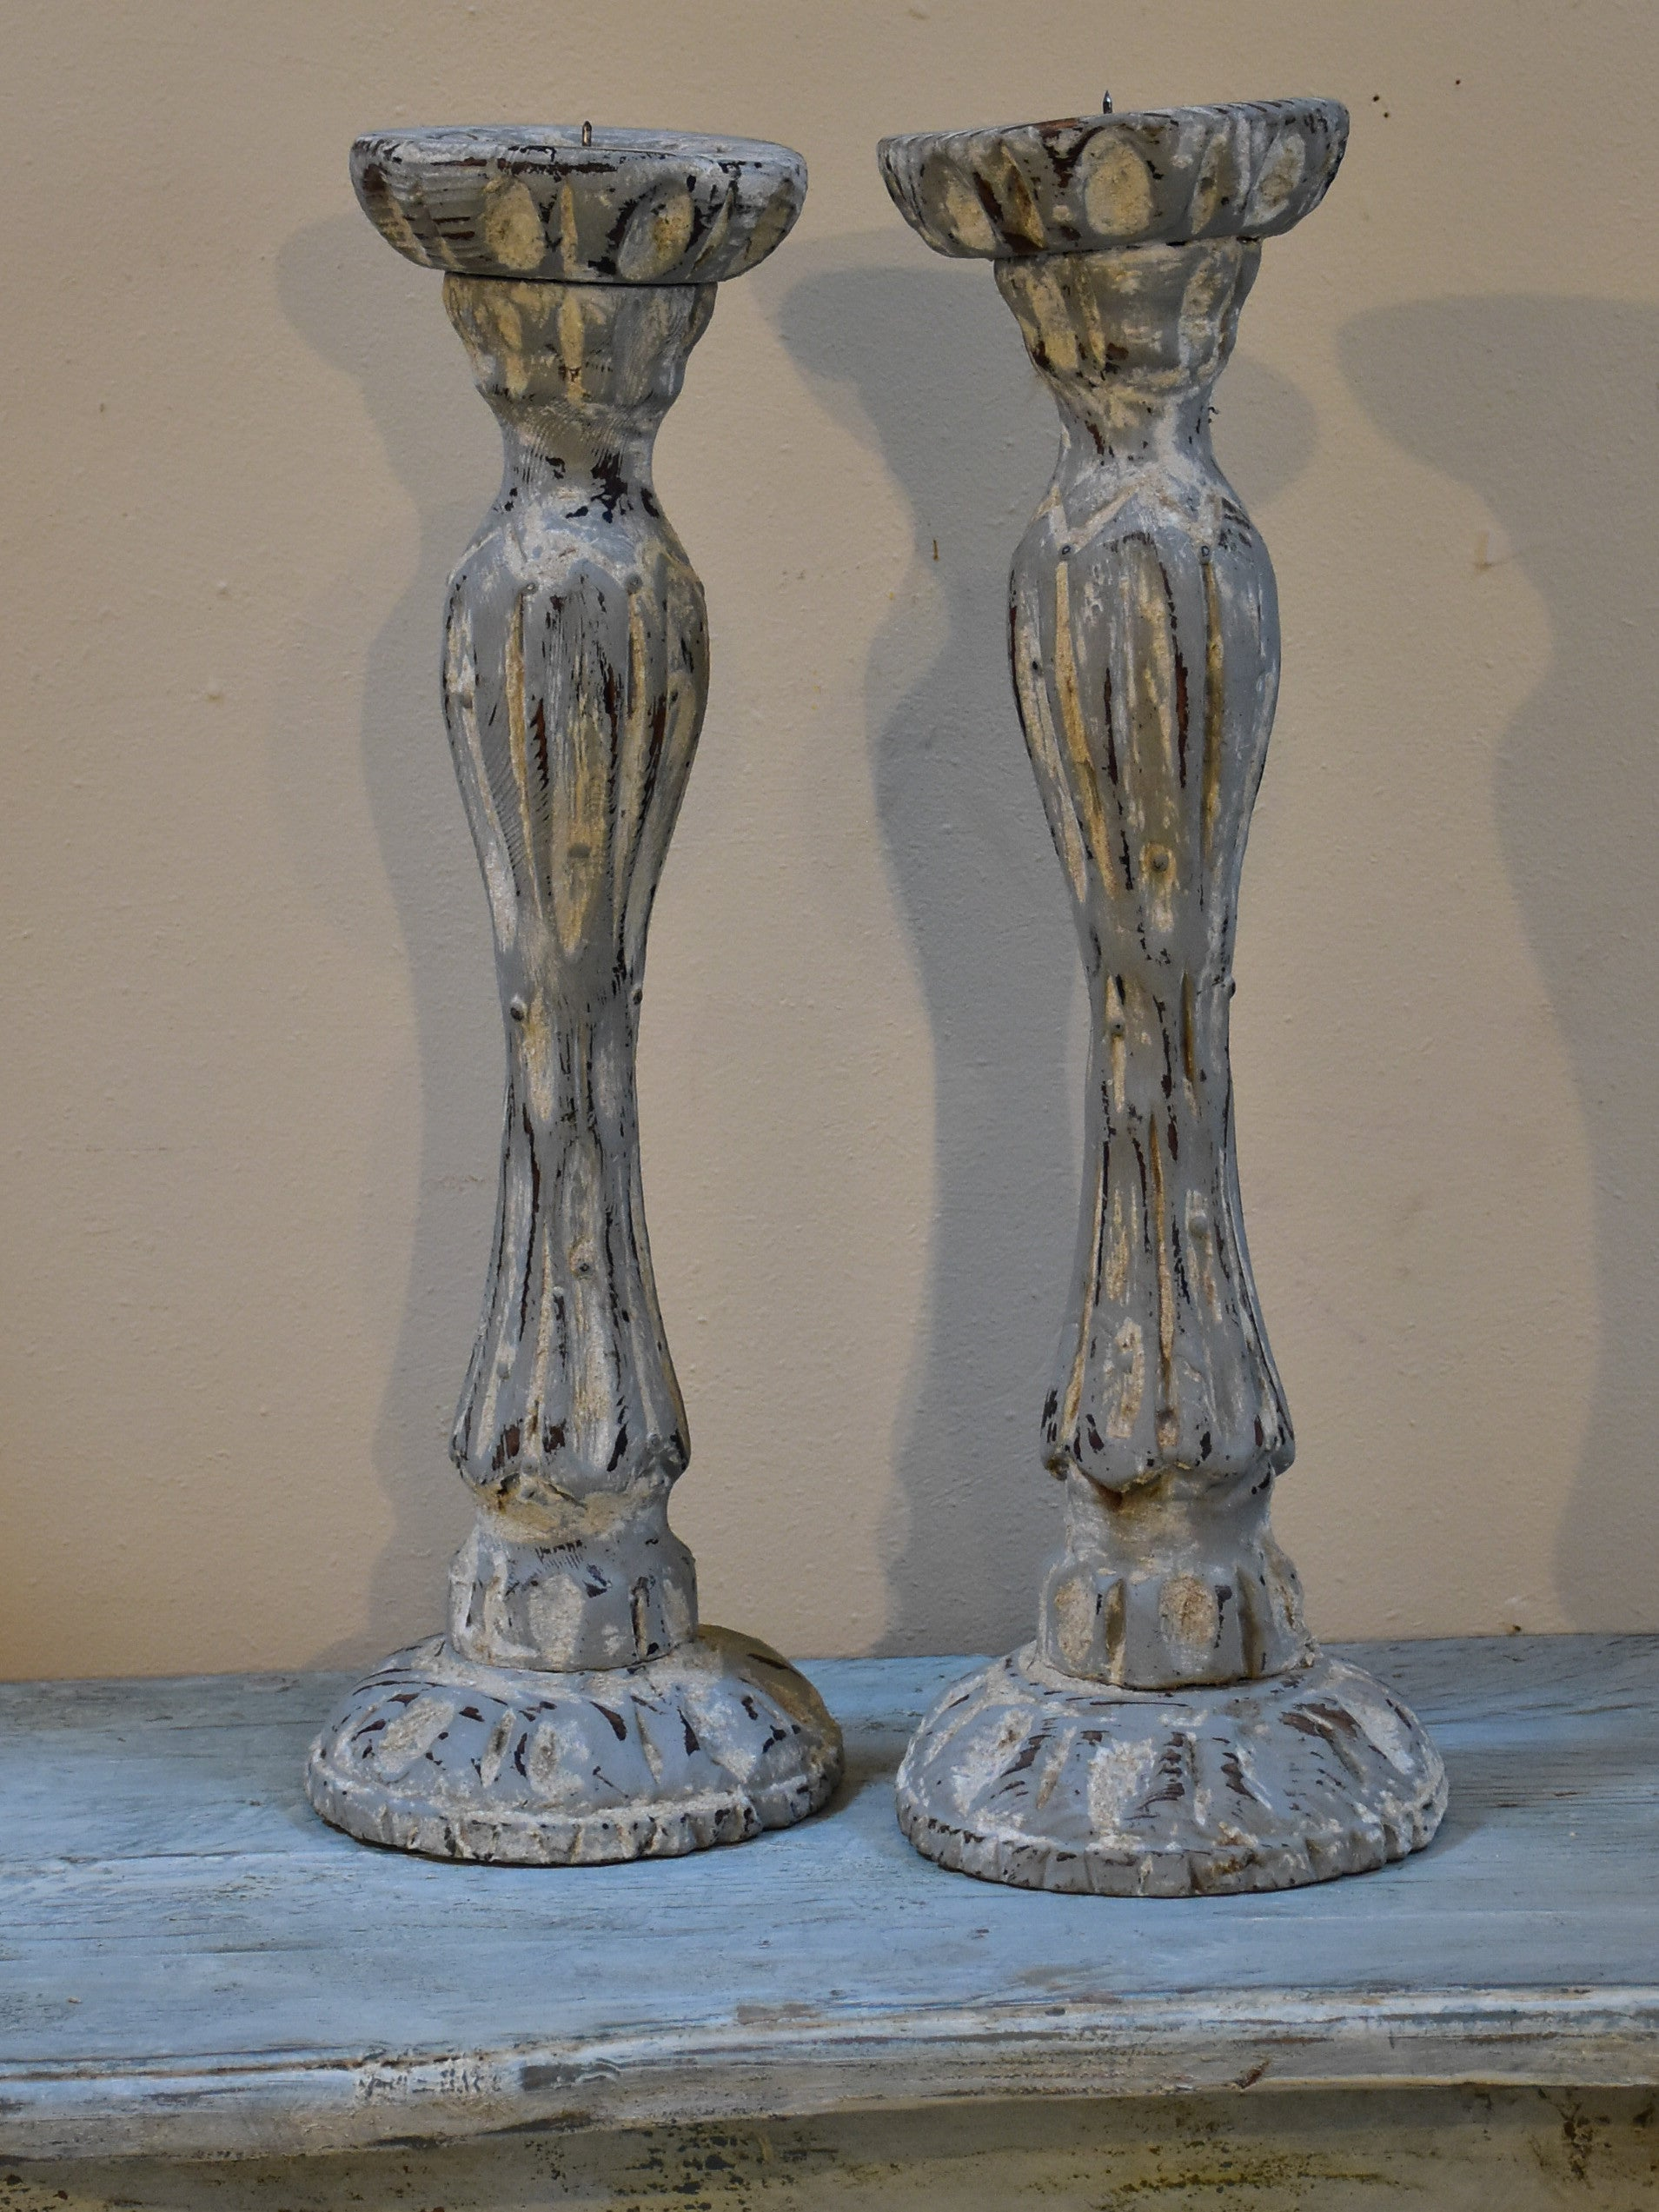 Pair of French candlesticks with white patina